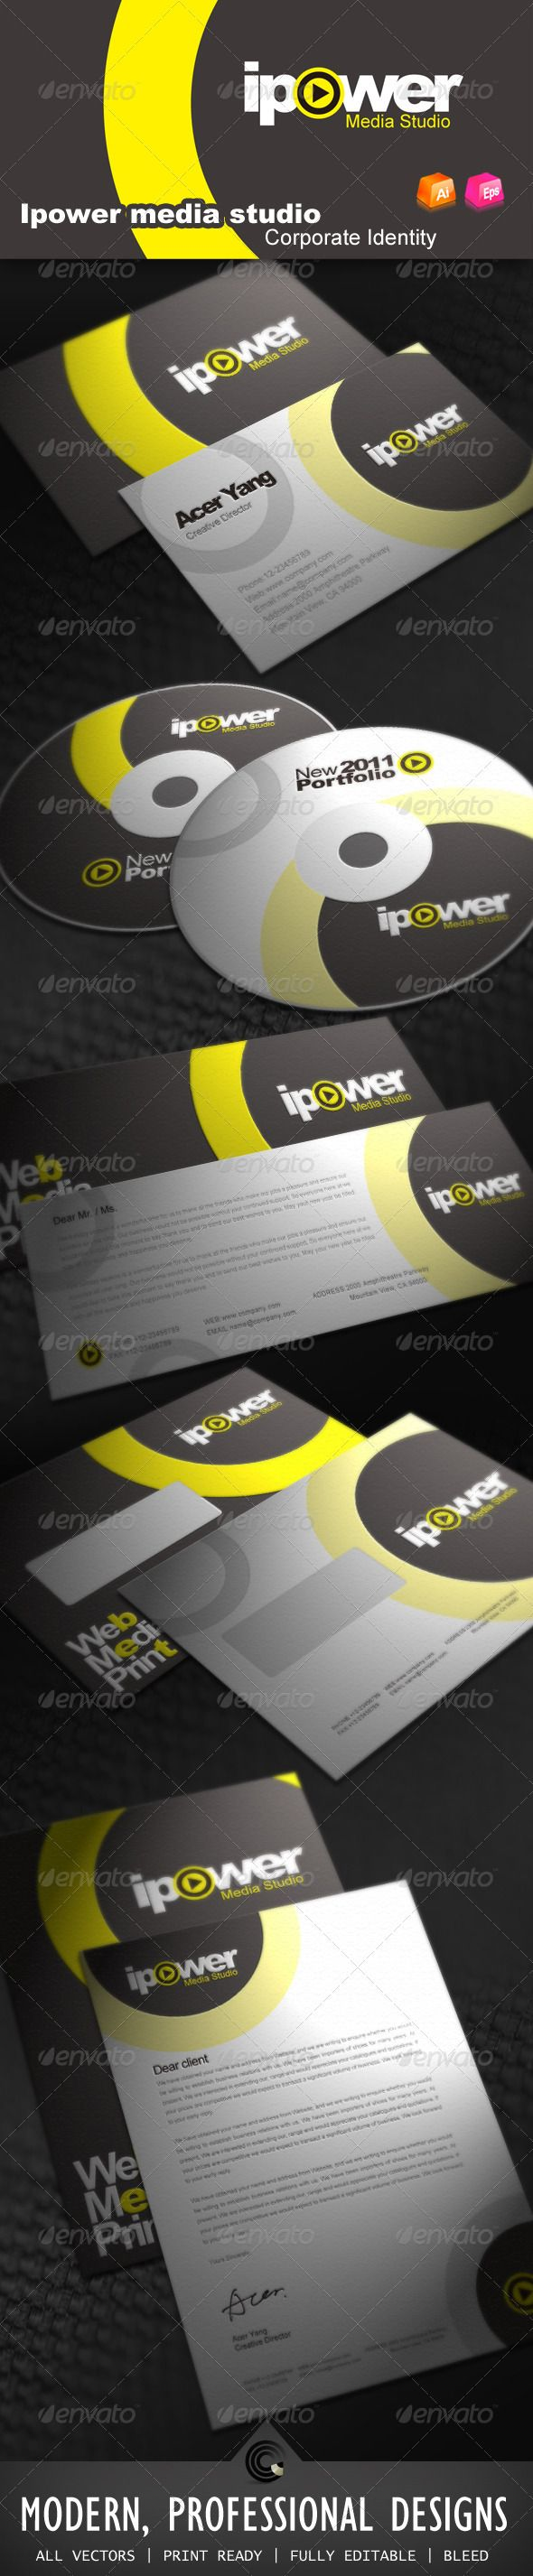 Ipower Midea Studio Corporate Identity GraphicRiver File